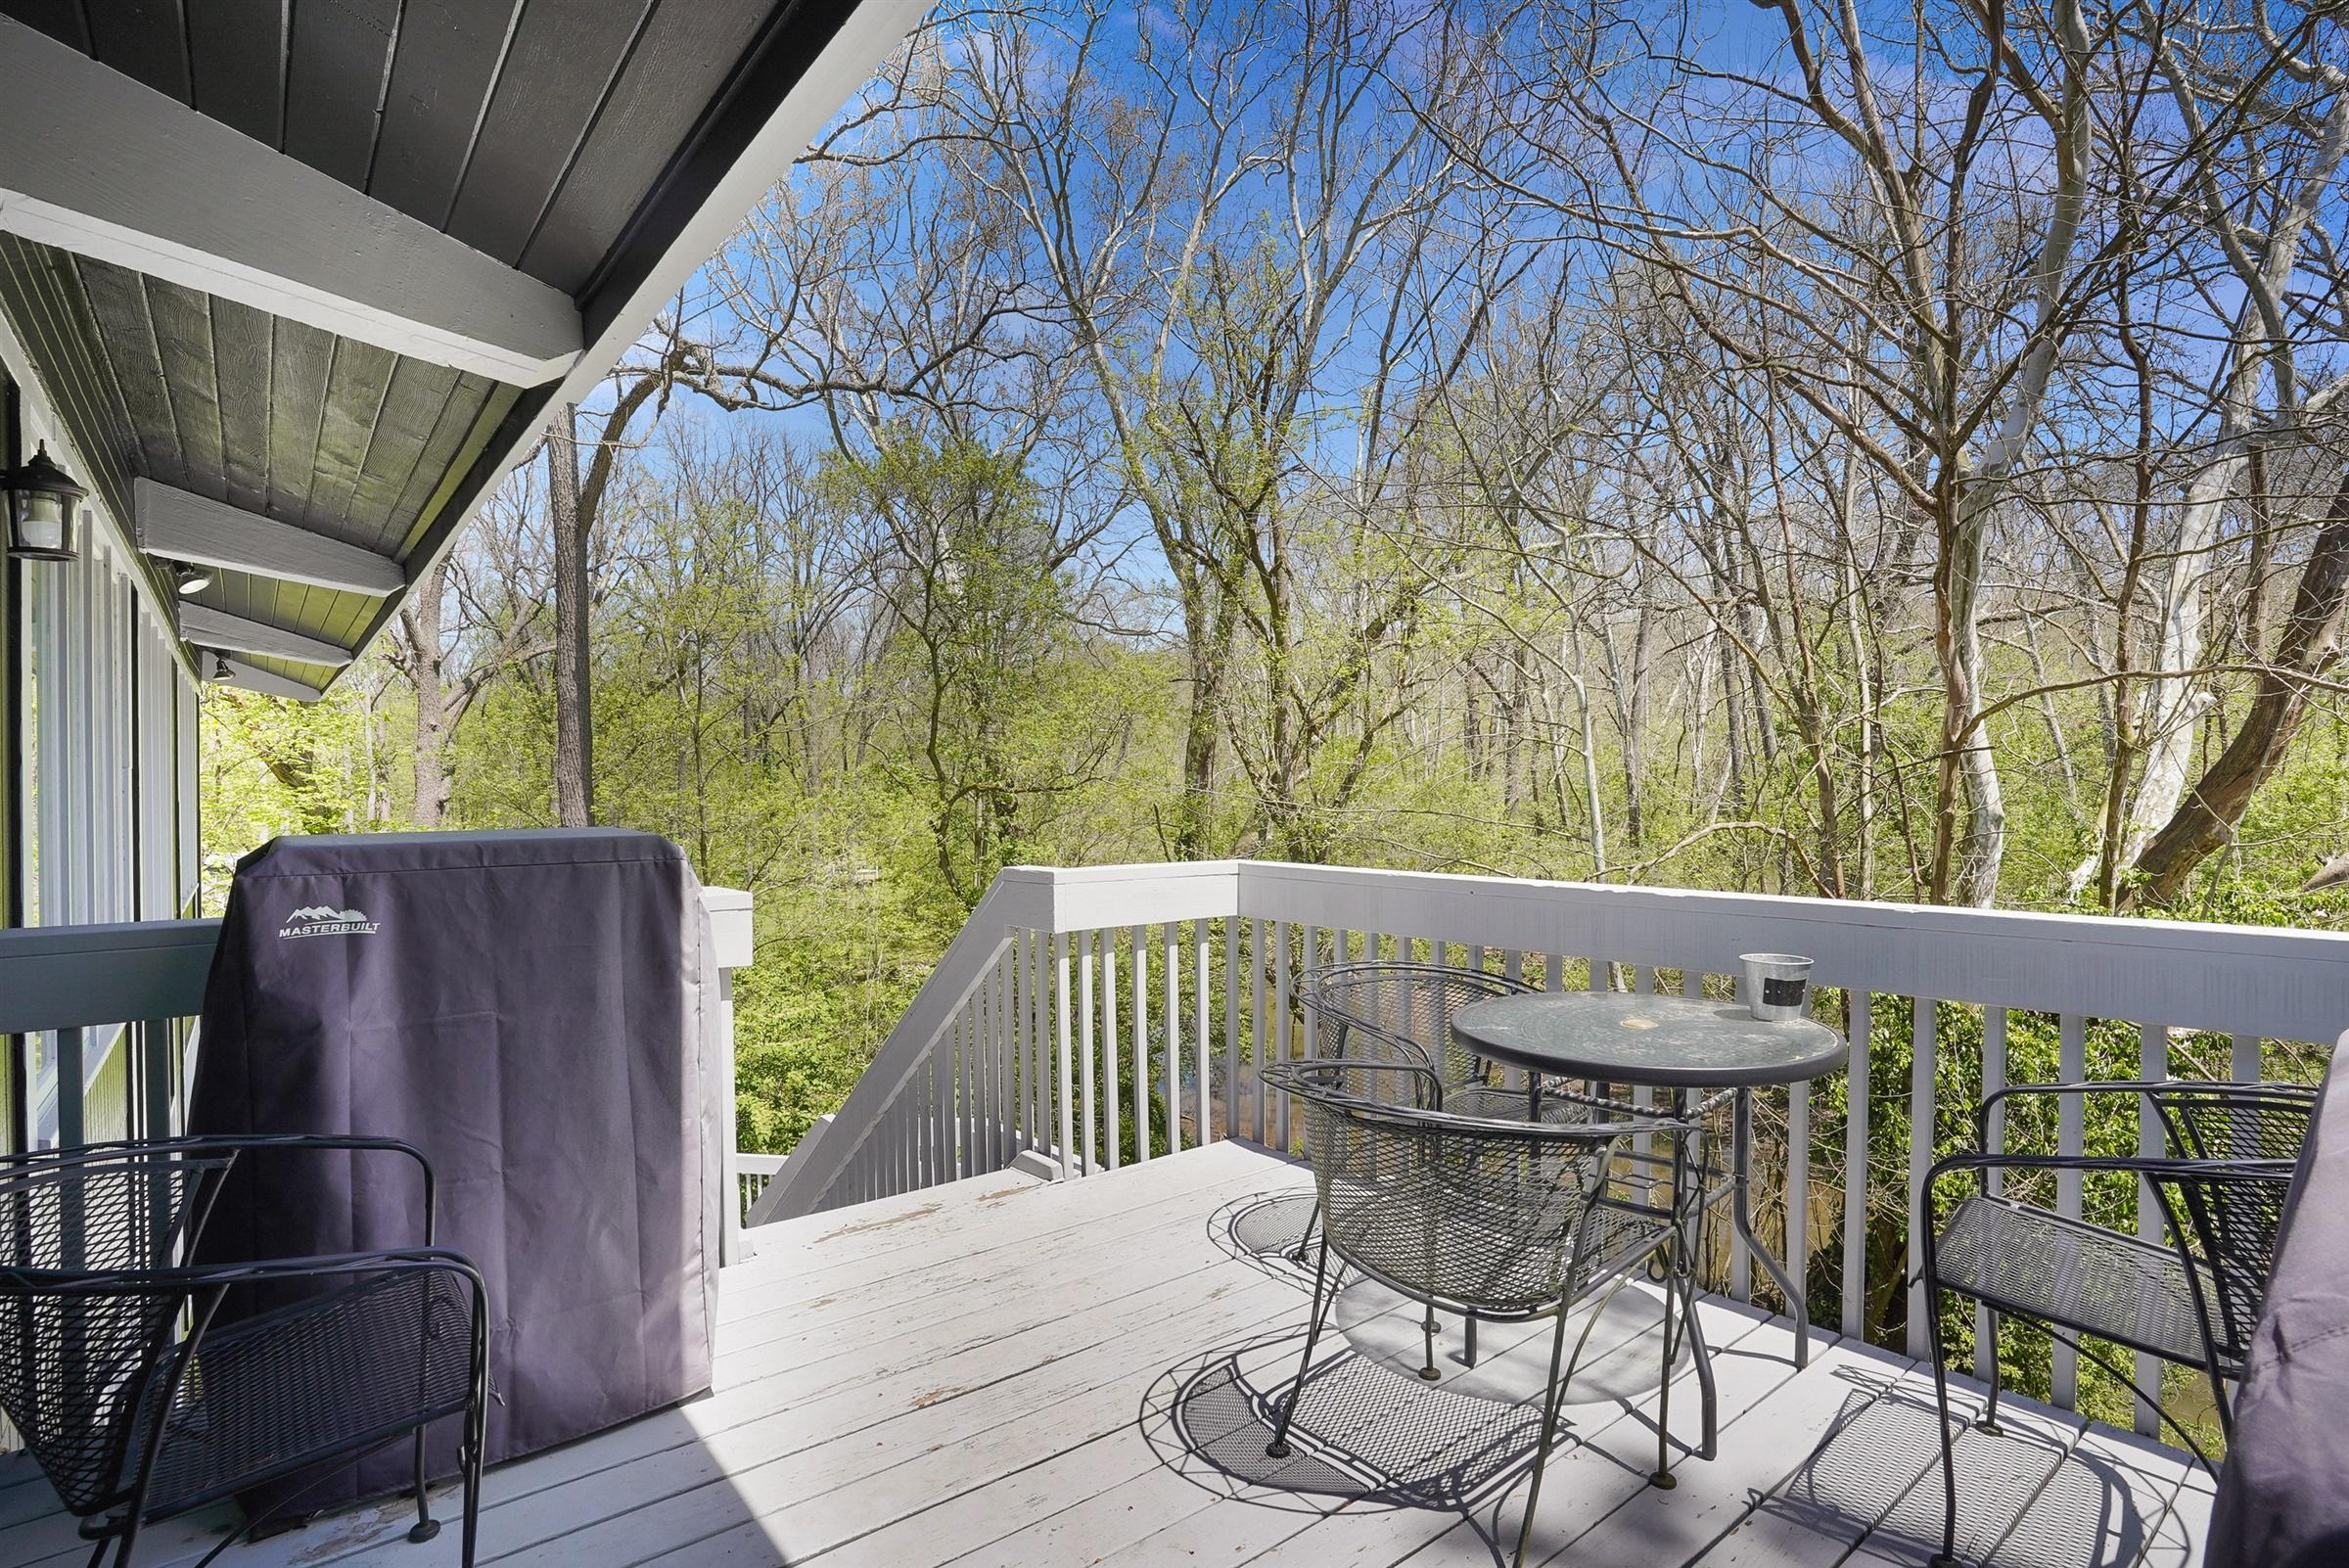 8100 Olentangy River Road, Columbus, Ohio 43235, 3 Bedrooms Bedrooms, ,3 BathroomsBathrooms,Residential,For Sale,Olentangy River,220018223